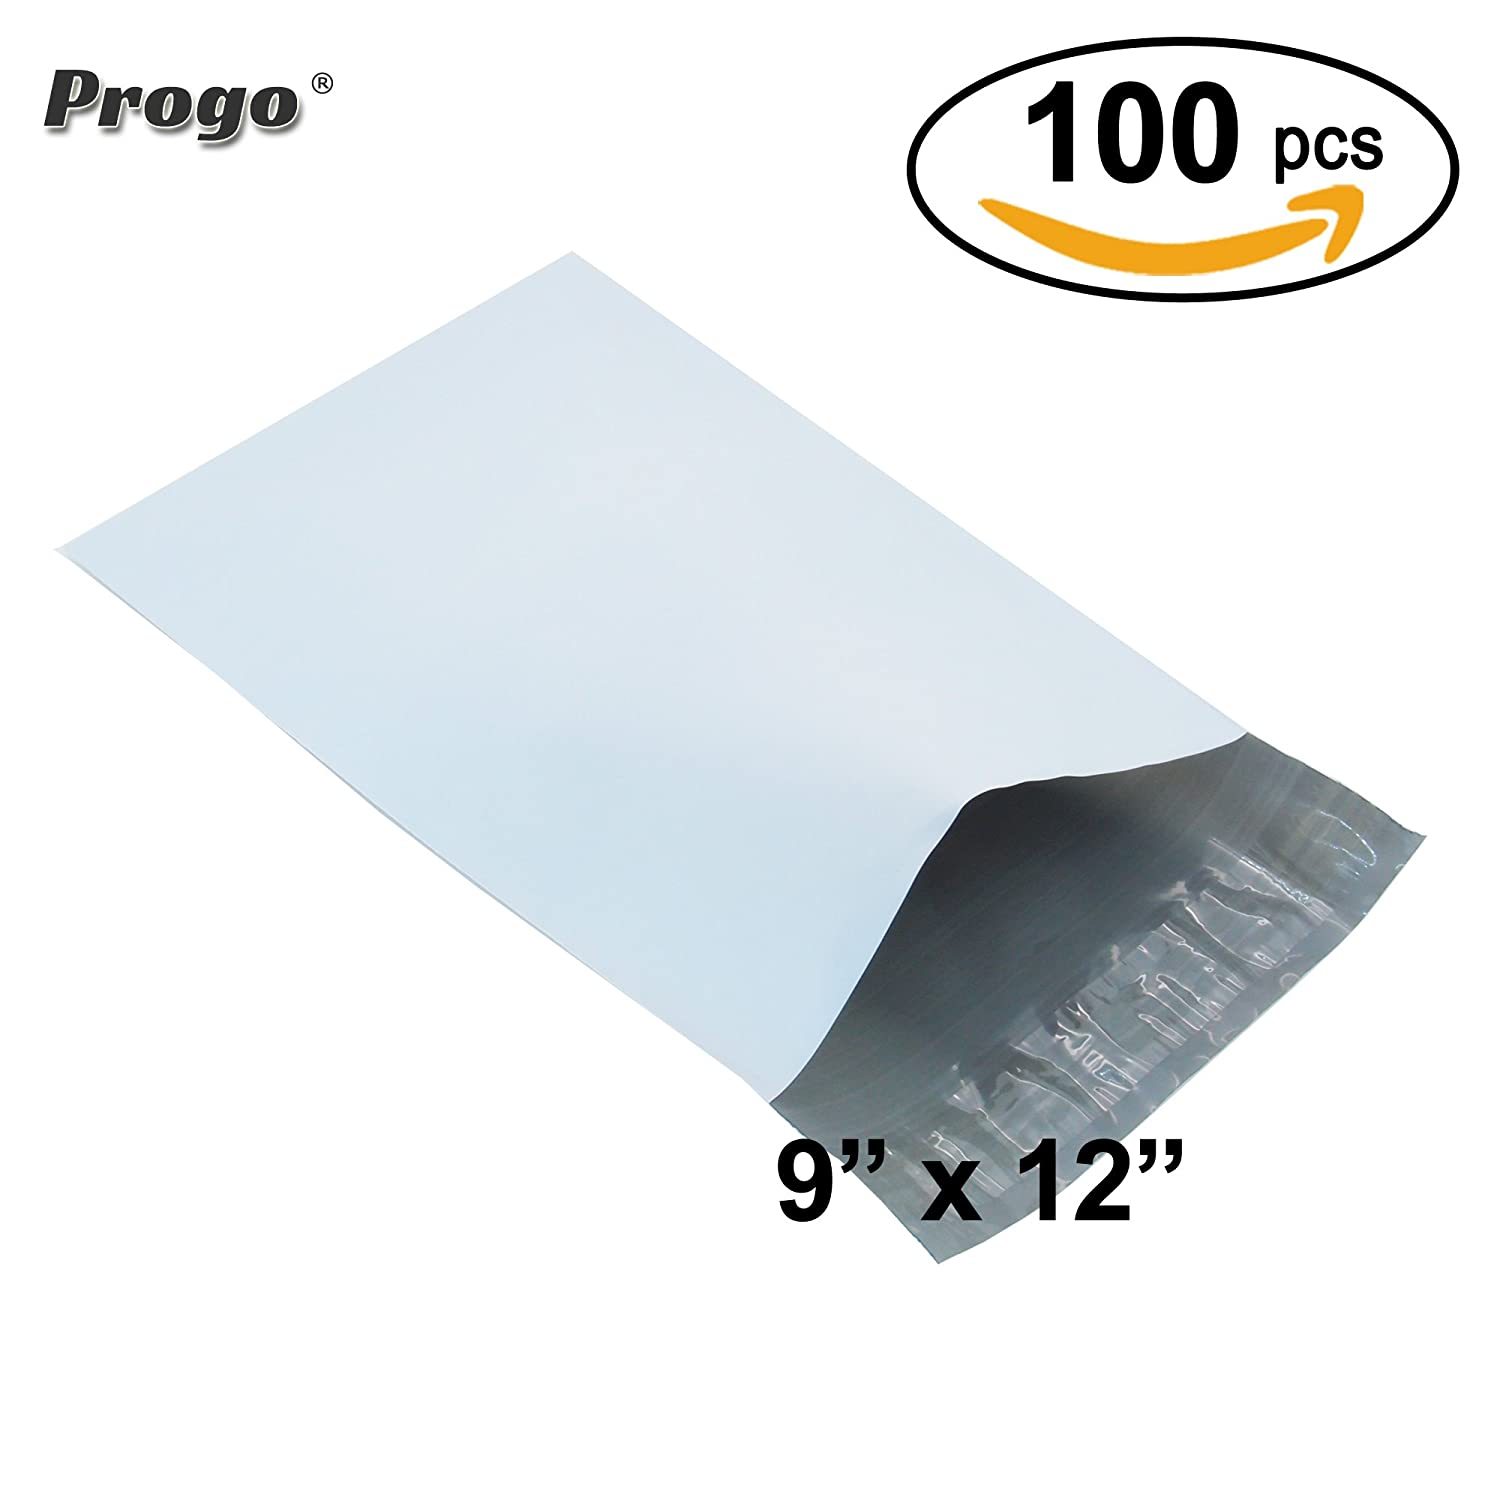 Progo 100 ct 9x12 Self-seal Poly Mailers. Tear-proof, Water-resistant and Postage-saving Lightweight Plastic Shipping Envelopes / Bags.